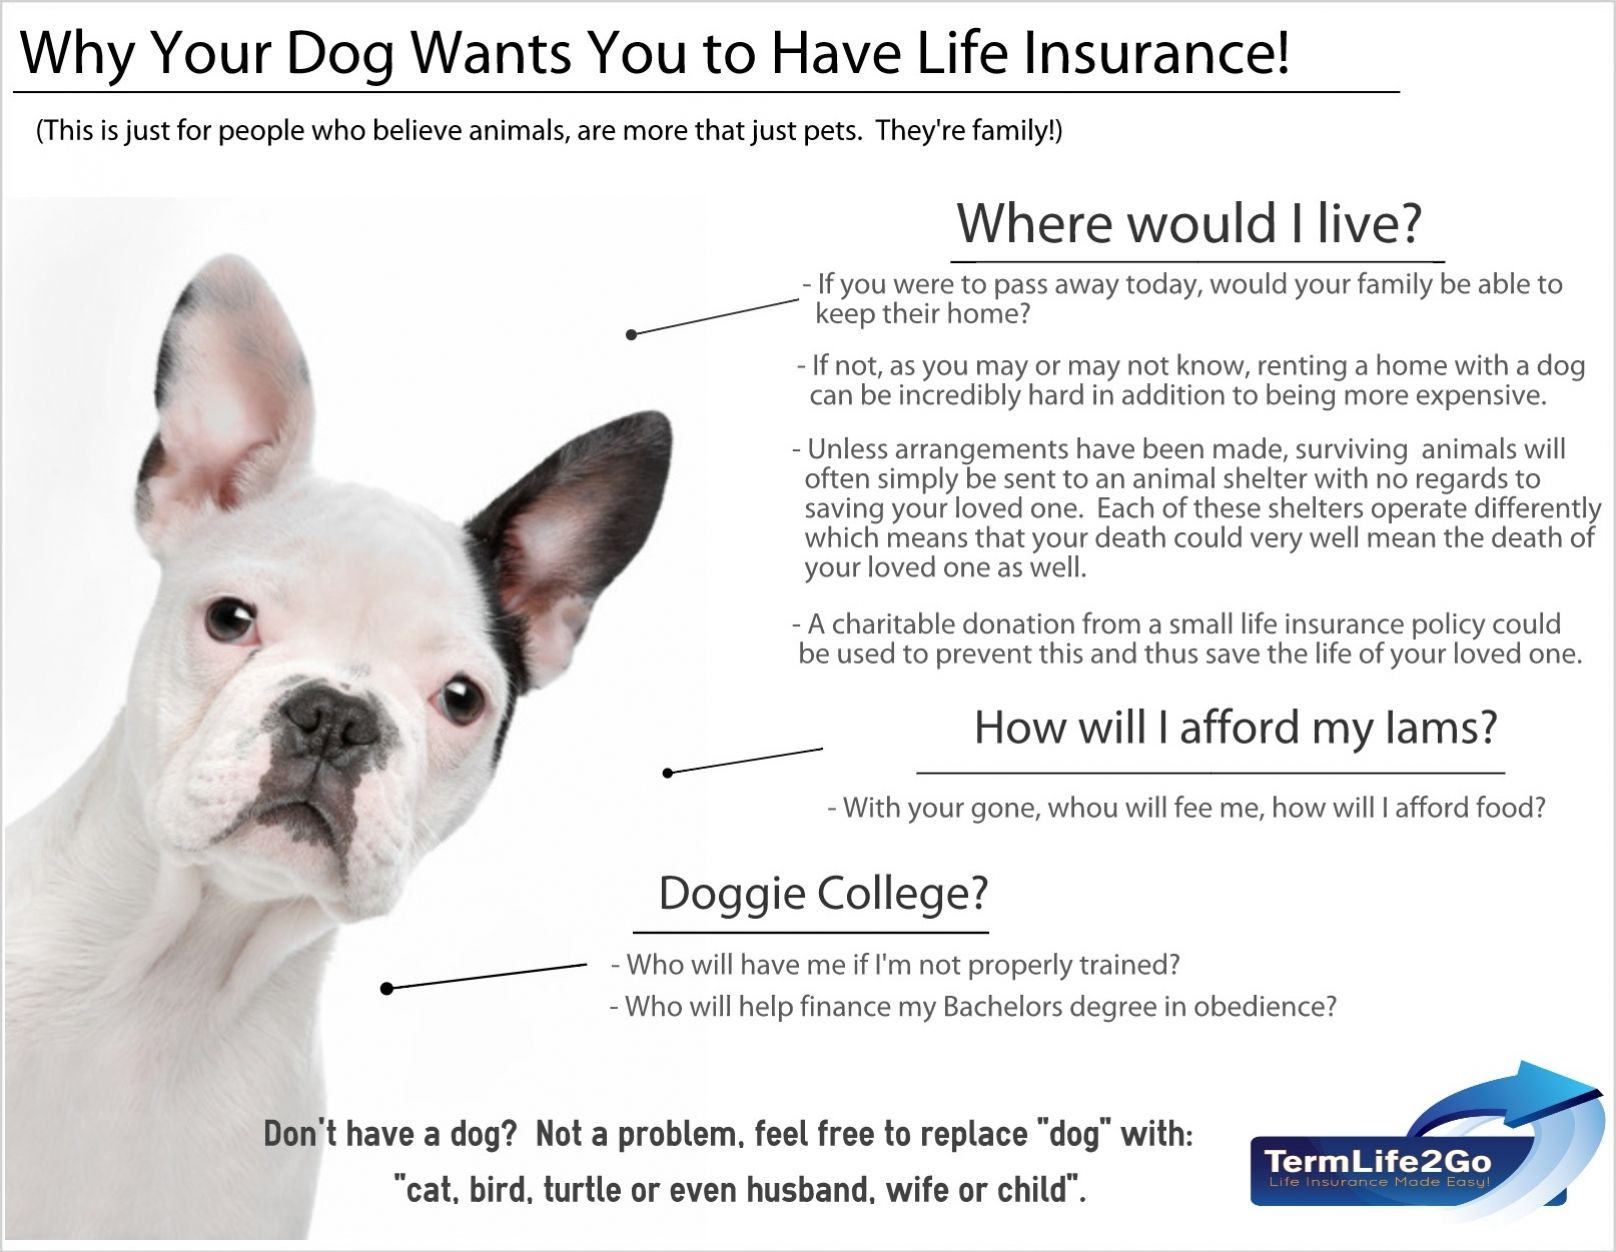 Why your dog wants you to get life insurance.